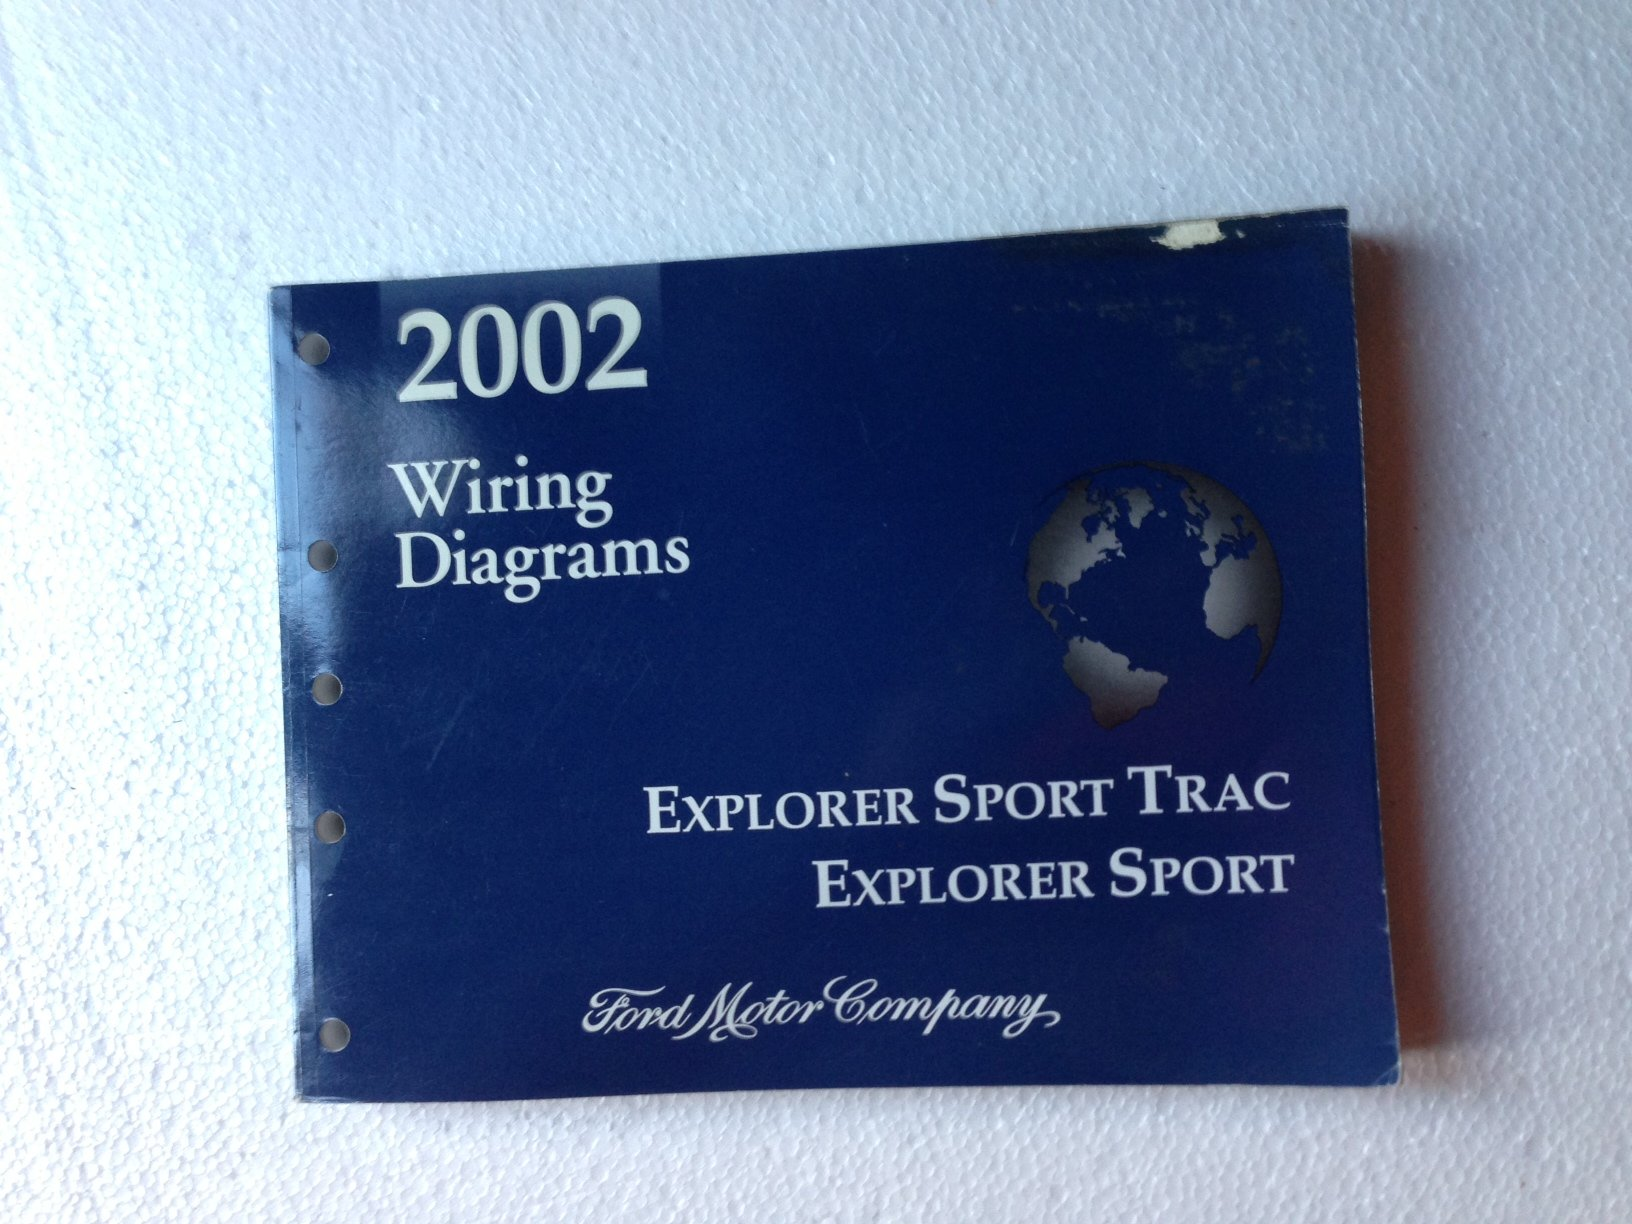 2002 ford explorer sport trac and explorer sport wiring diagram manual  paperback – 2002